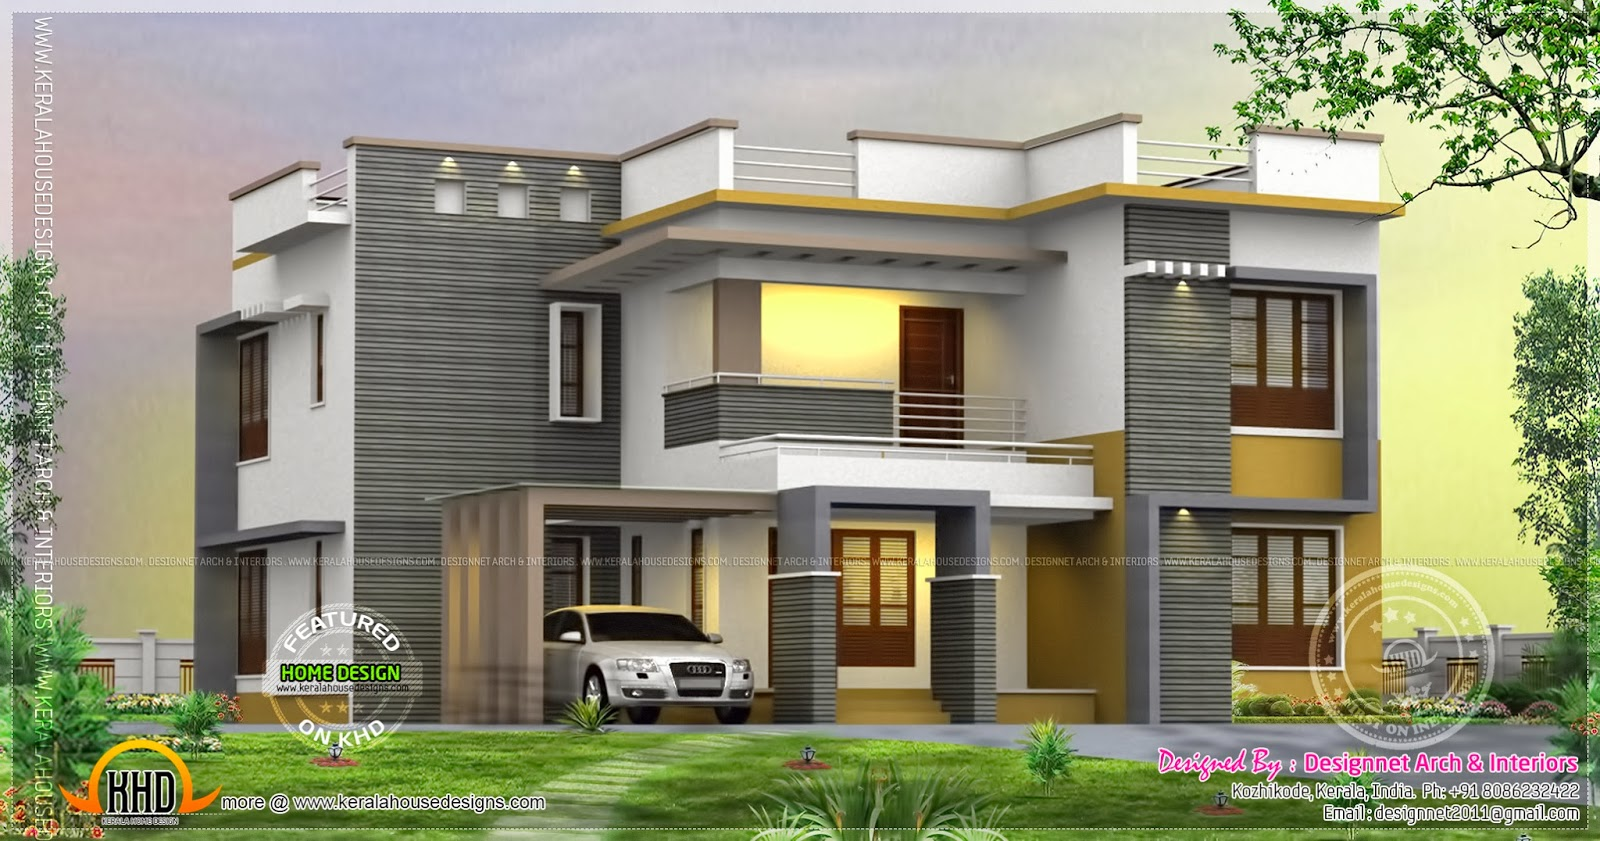 Siddu buzz online kerala home design 2500 sq ft house plans indian style